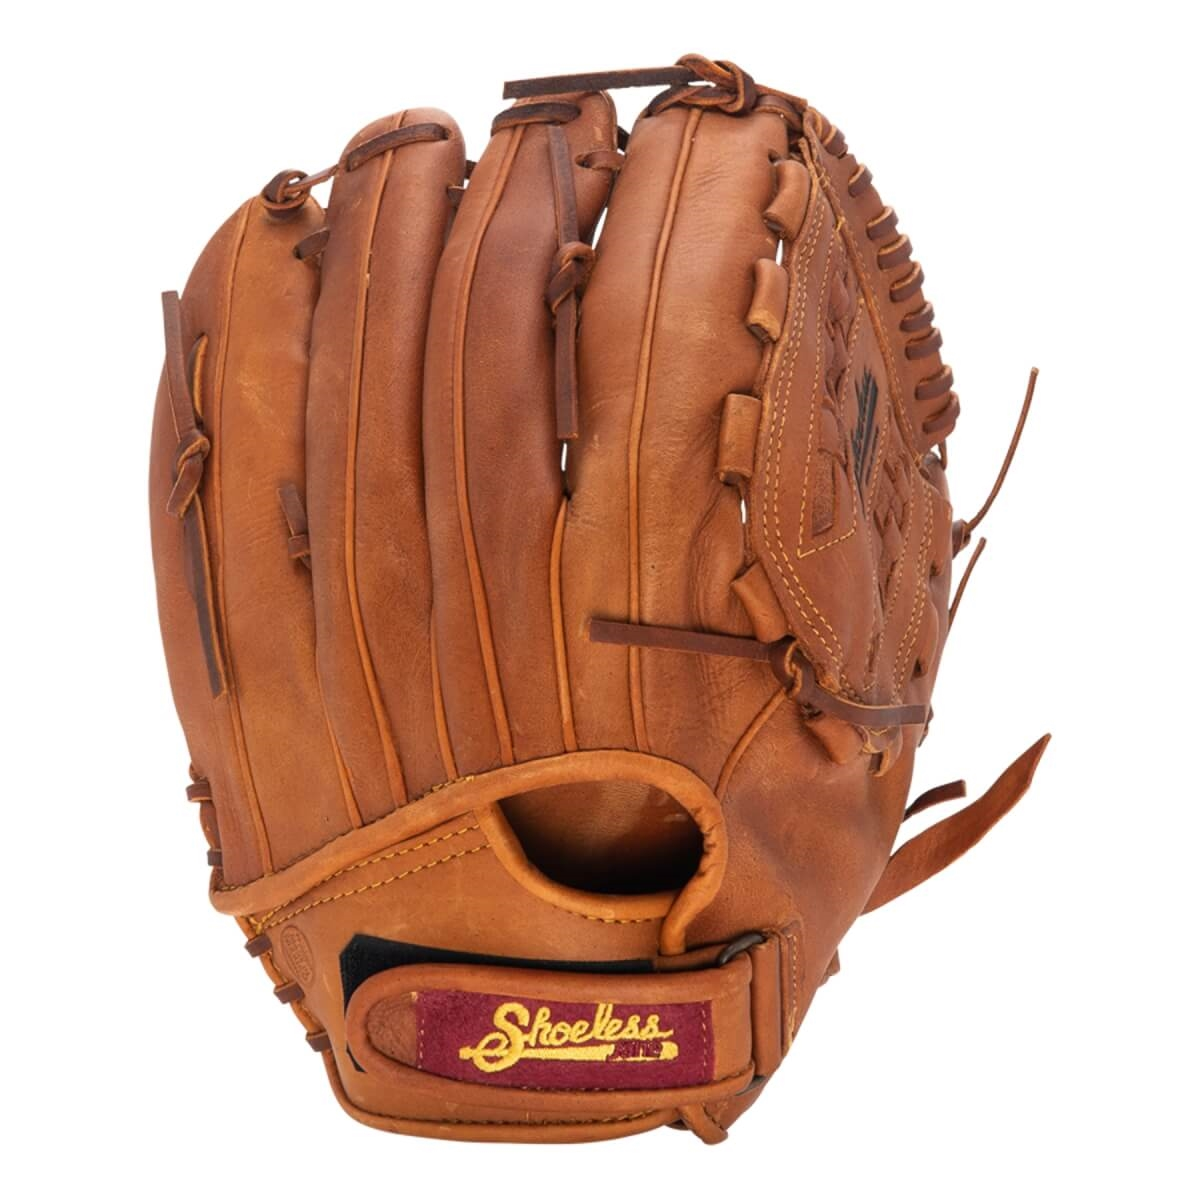 13 Quot Fast Pitch Softball Glove Fast Pitch Outfield Glove